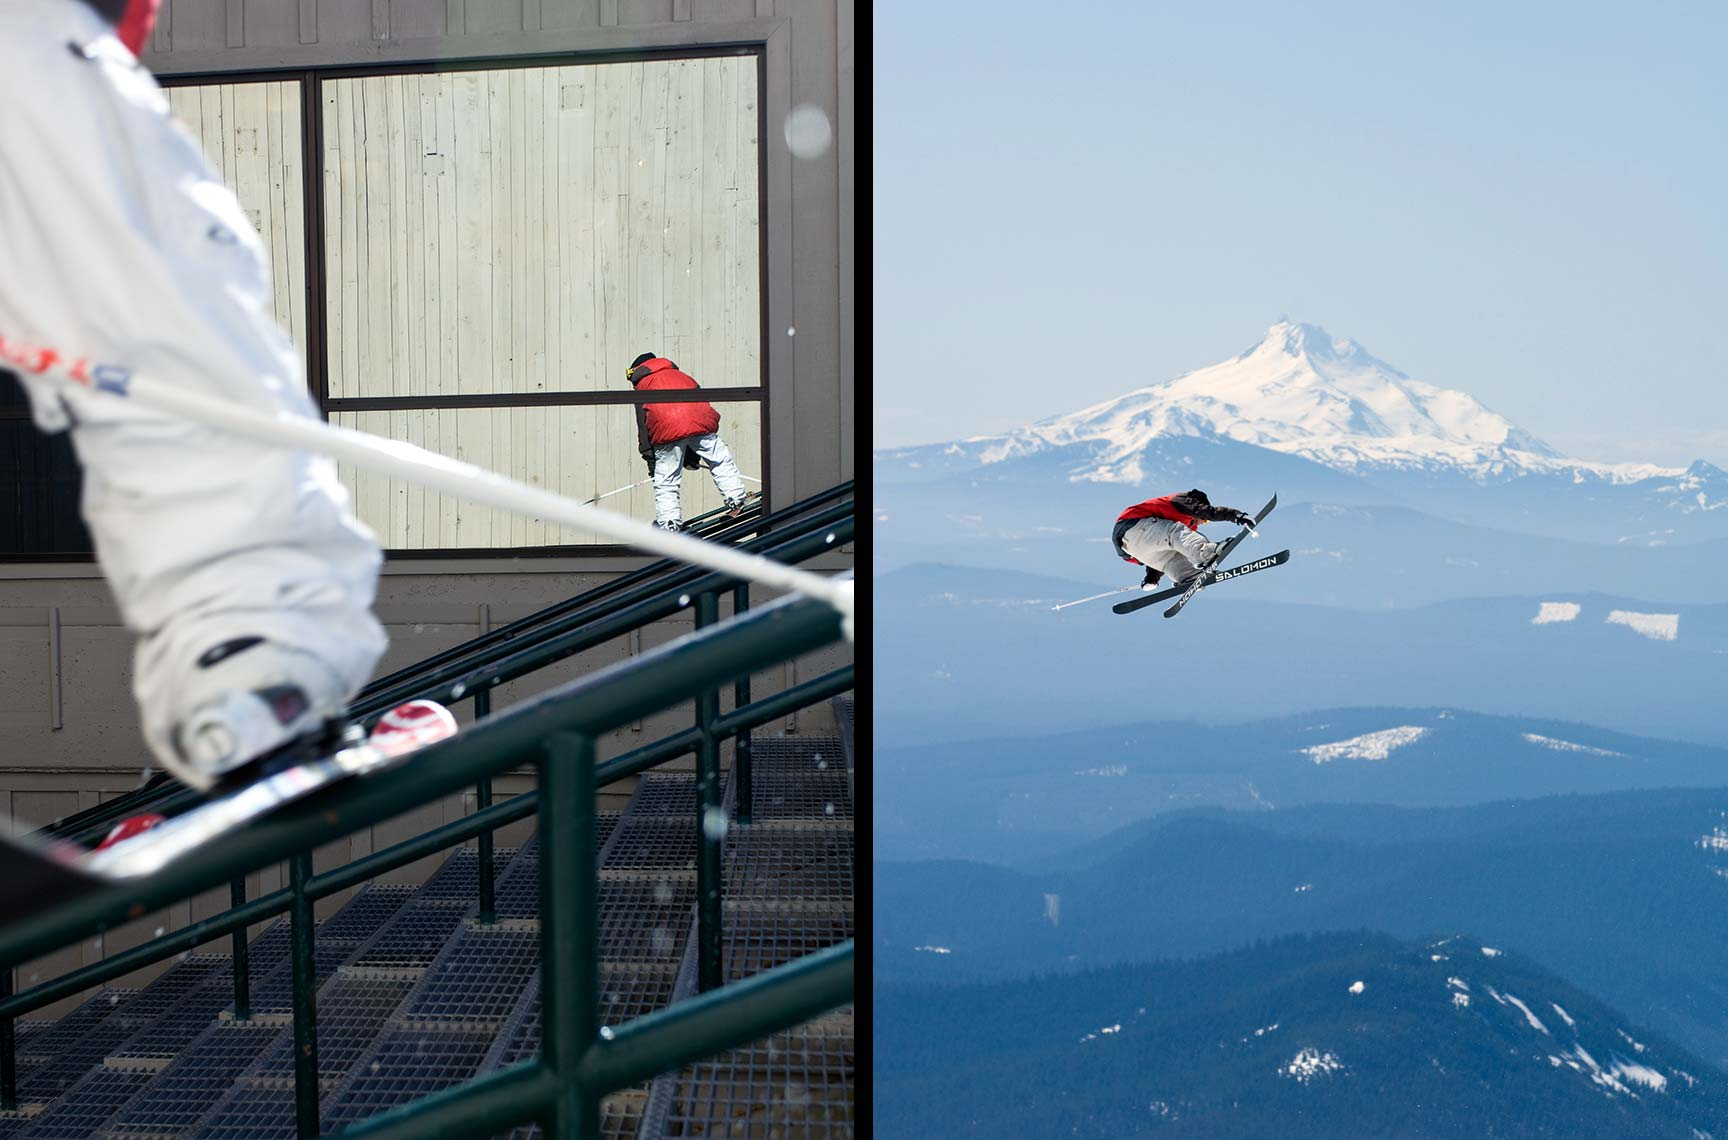 Ian-Coble-Freeskiing-Sammy-Carlson-Mt-Hood